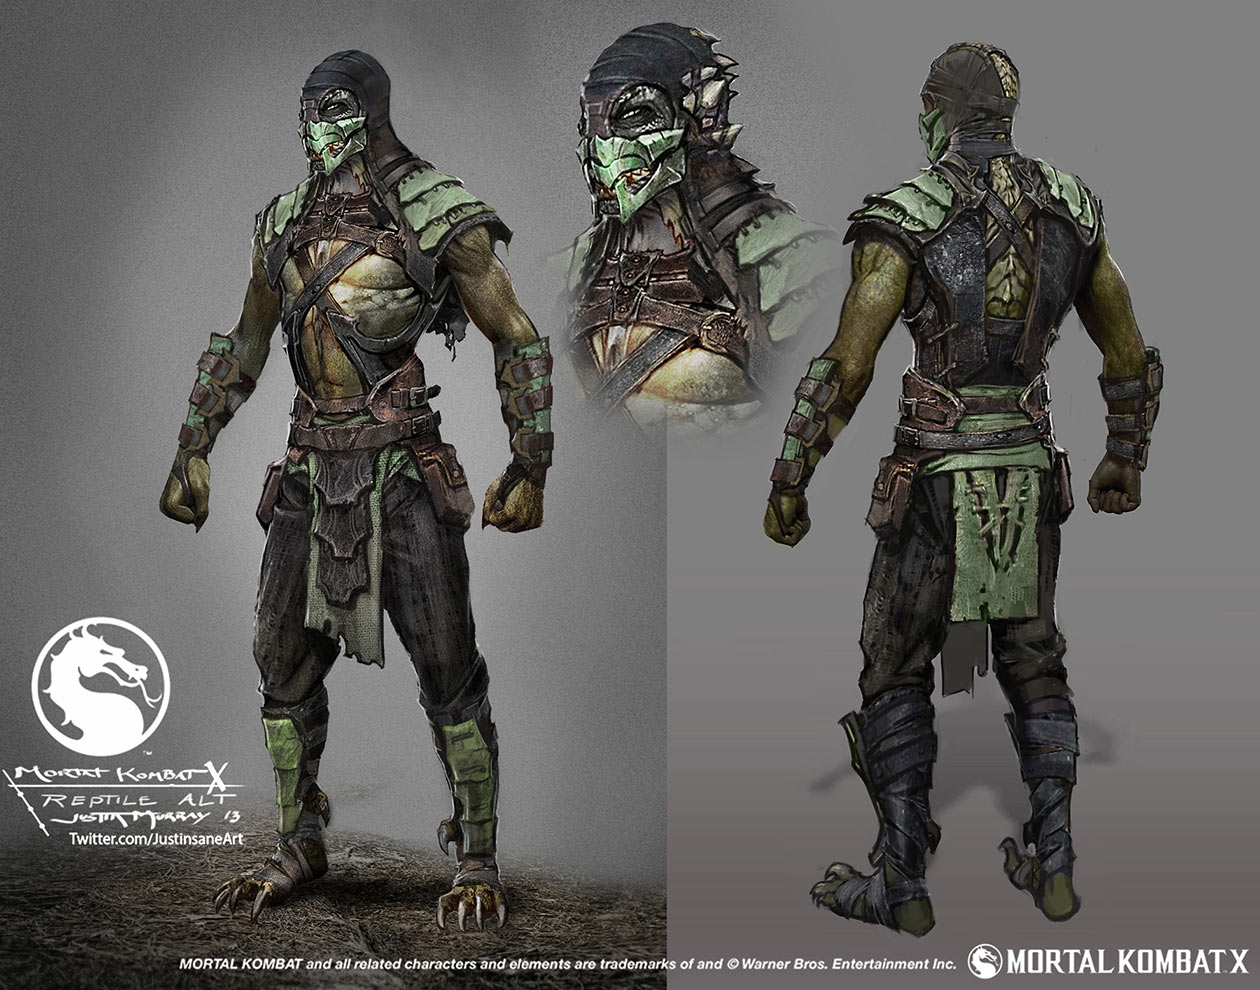 Art-Of-Mortal-Kombat-X-94